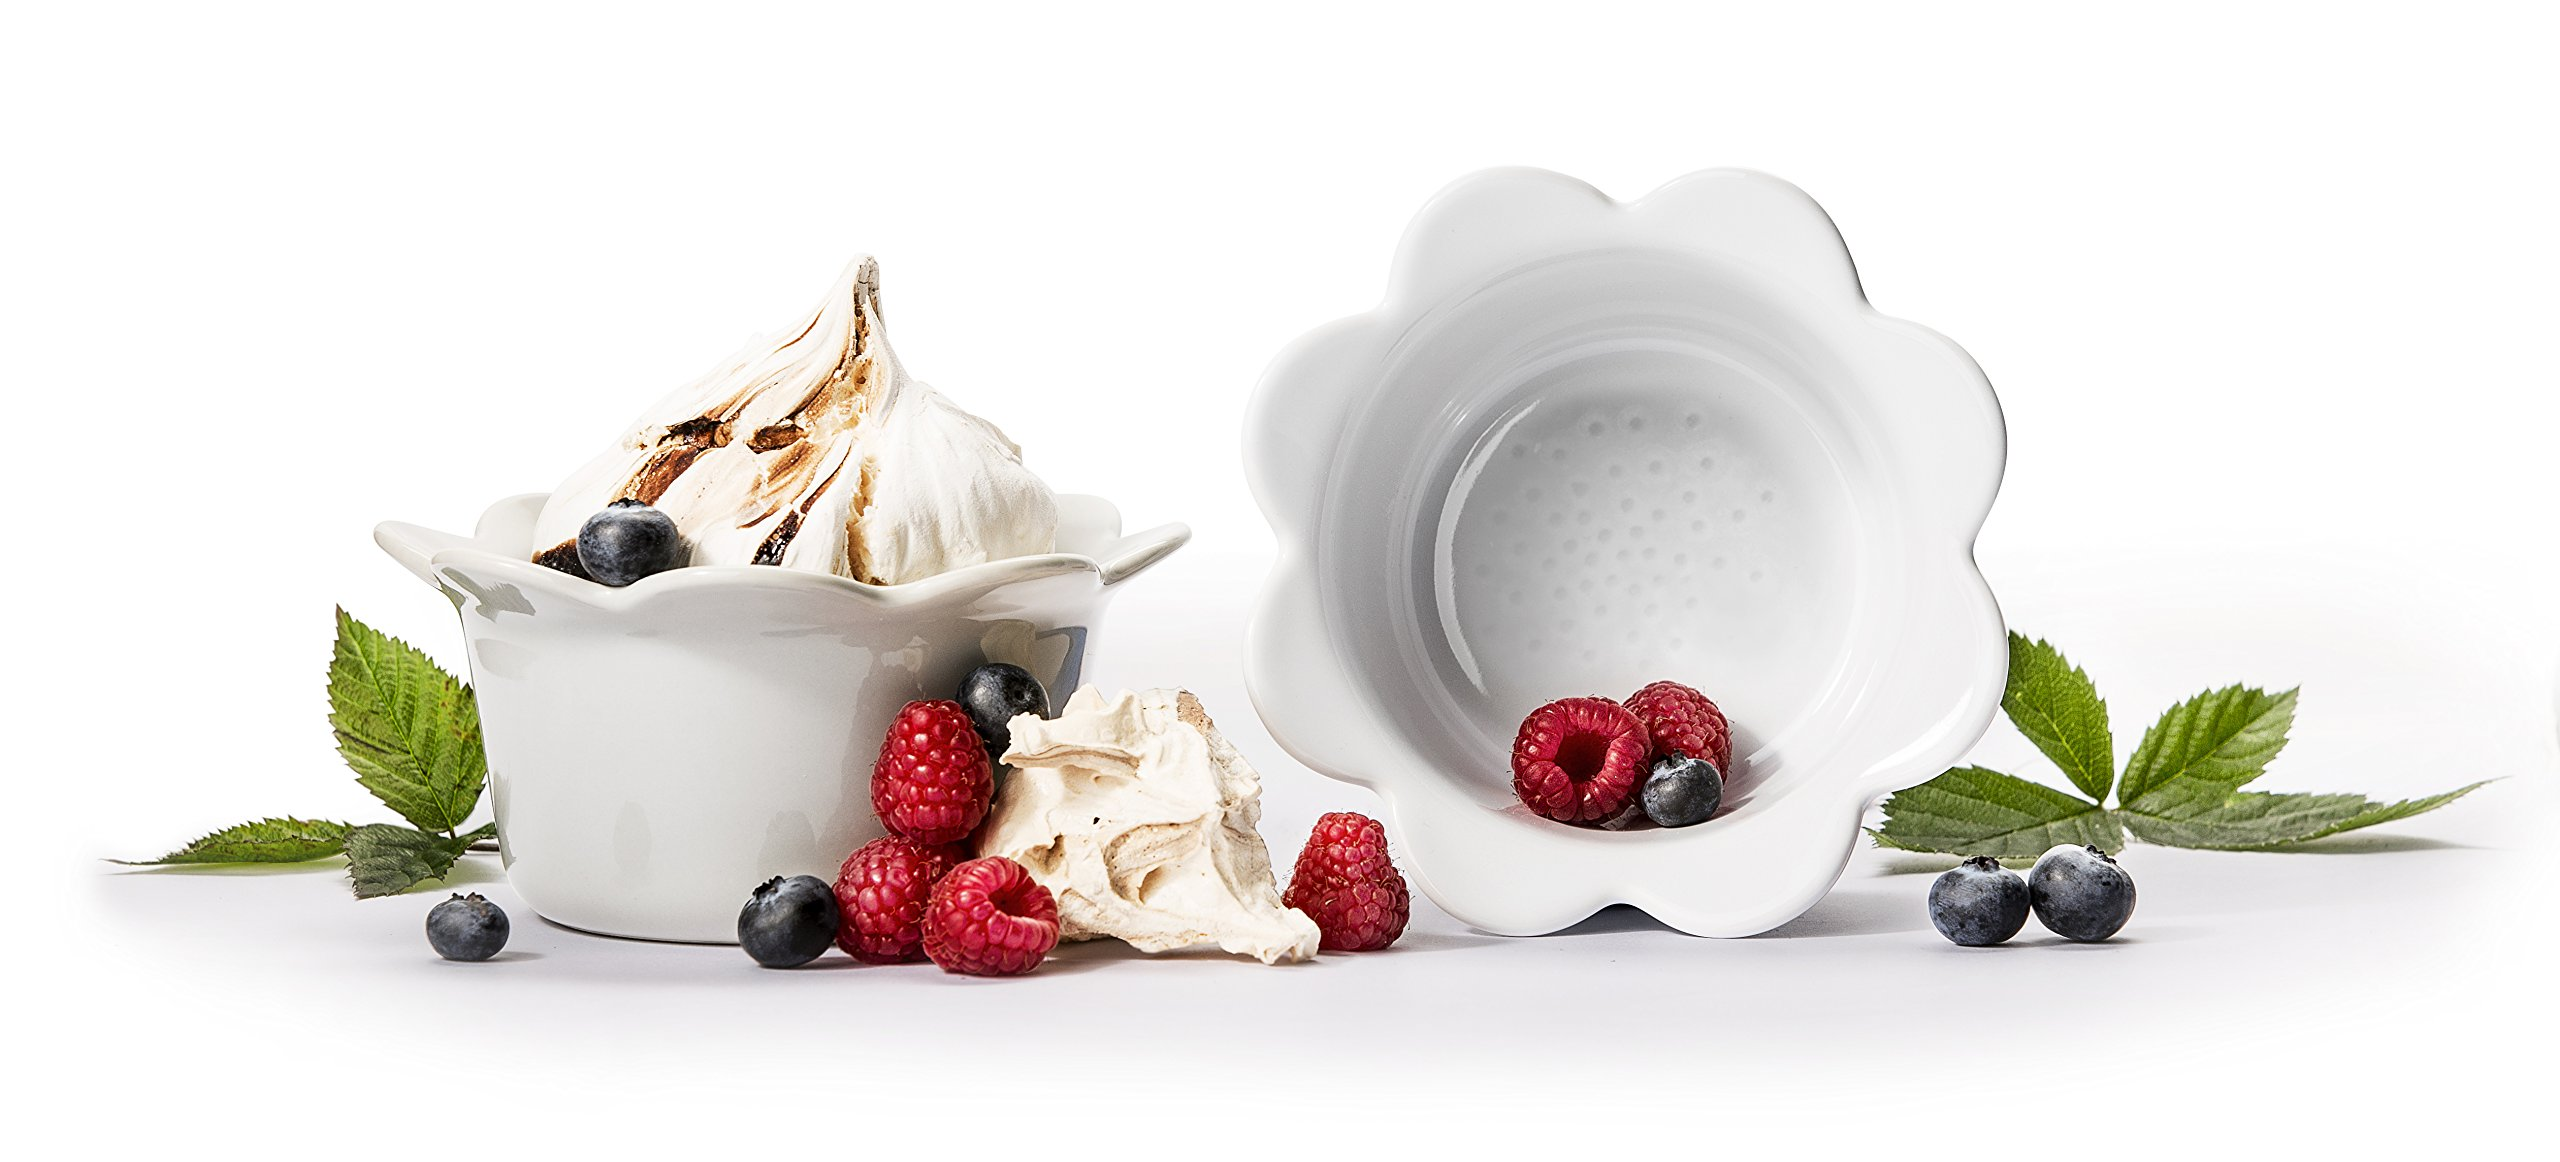 Sagaform Piccadilly Collection Ramekins in Ready-to-Give Gift Packaging Flower Shaped Set of 2, White